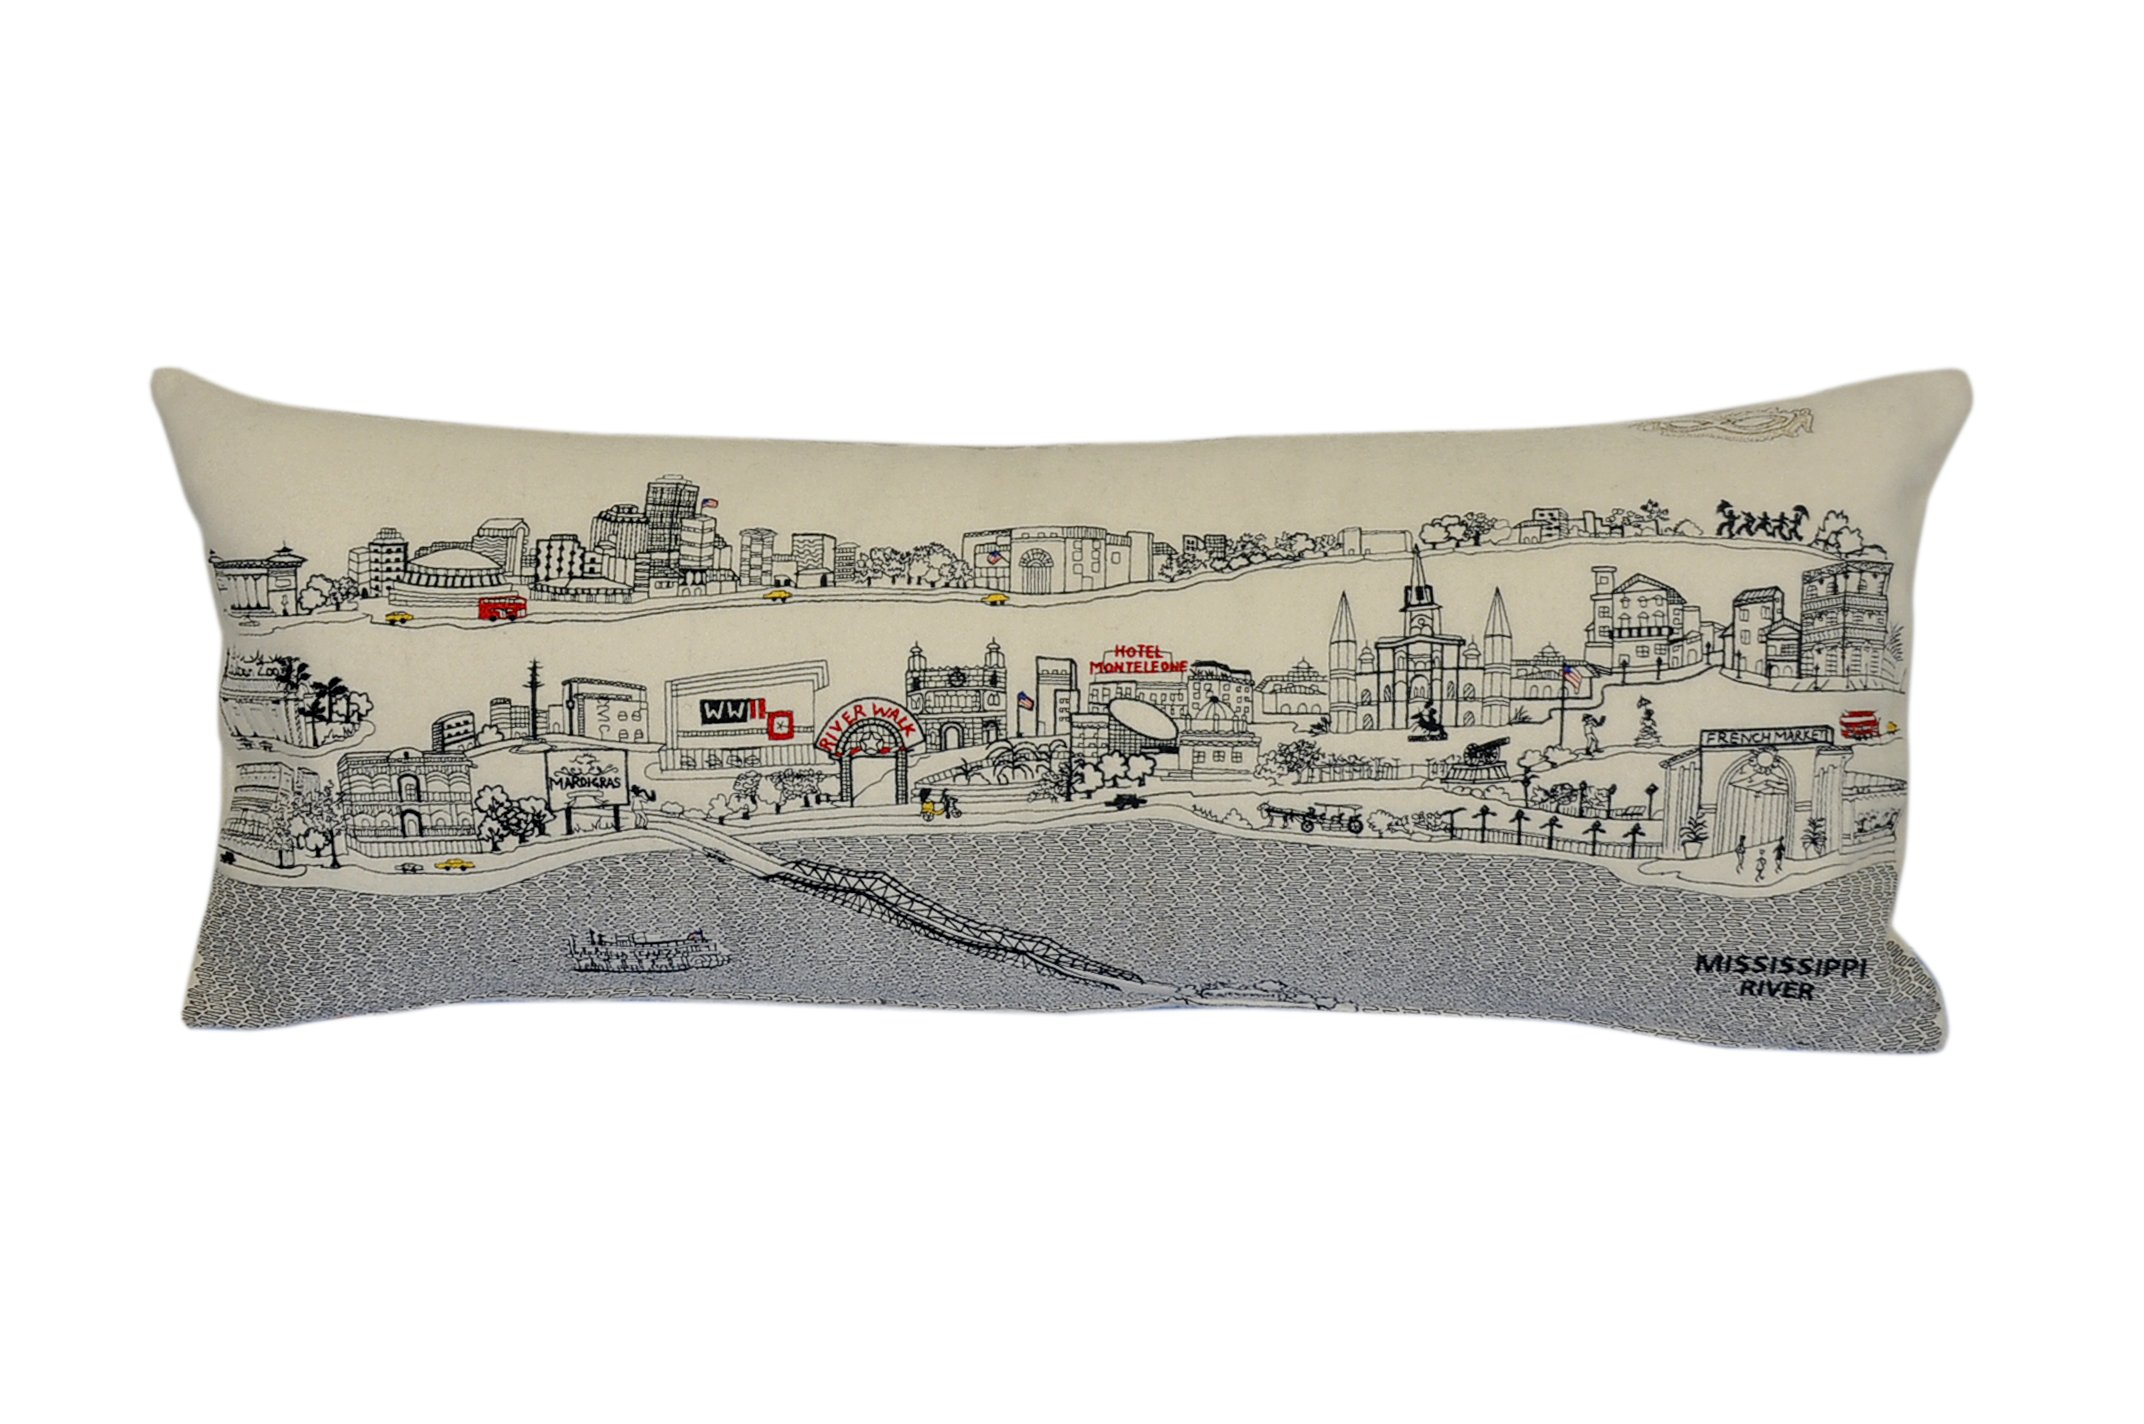 Beyond Cushions Polyester Throw Pillows Beyond Cushions New Orleans Daytime Skyline Queen Size Embroidered Accent Pillow 35 X 14 X 5 Inches Off-White Model # NOL-DAY-QUN